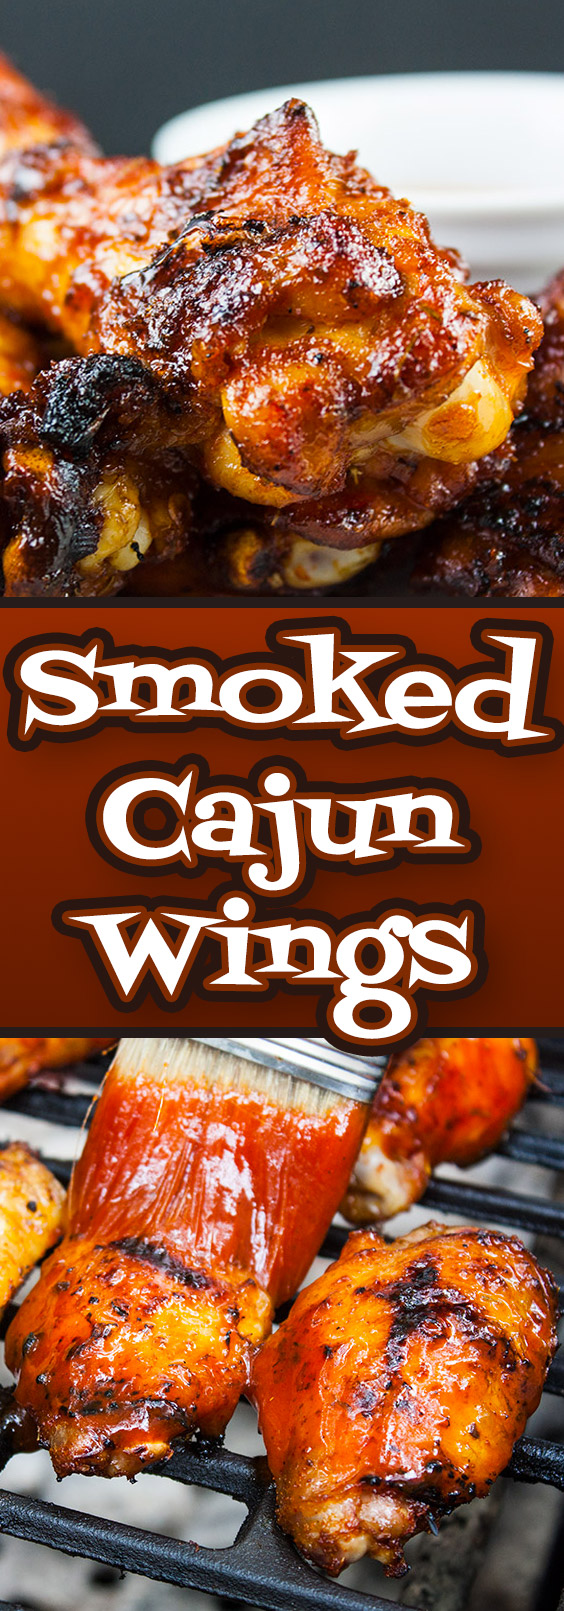 Smoked Cajun Wings - These barbecued wings have a spicy Cajun rub meeting up with some sweet Pecan wood smoke, then finished off with an aromatic hot sauce. They are deliciously smokey and spicy with a slight sticky sweet sauce that brings it all together in the most incredible wing you will ever have.